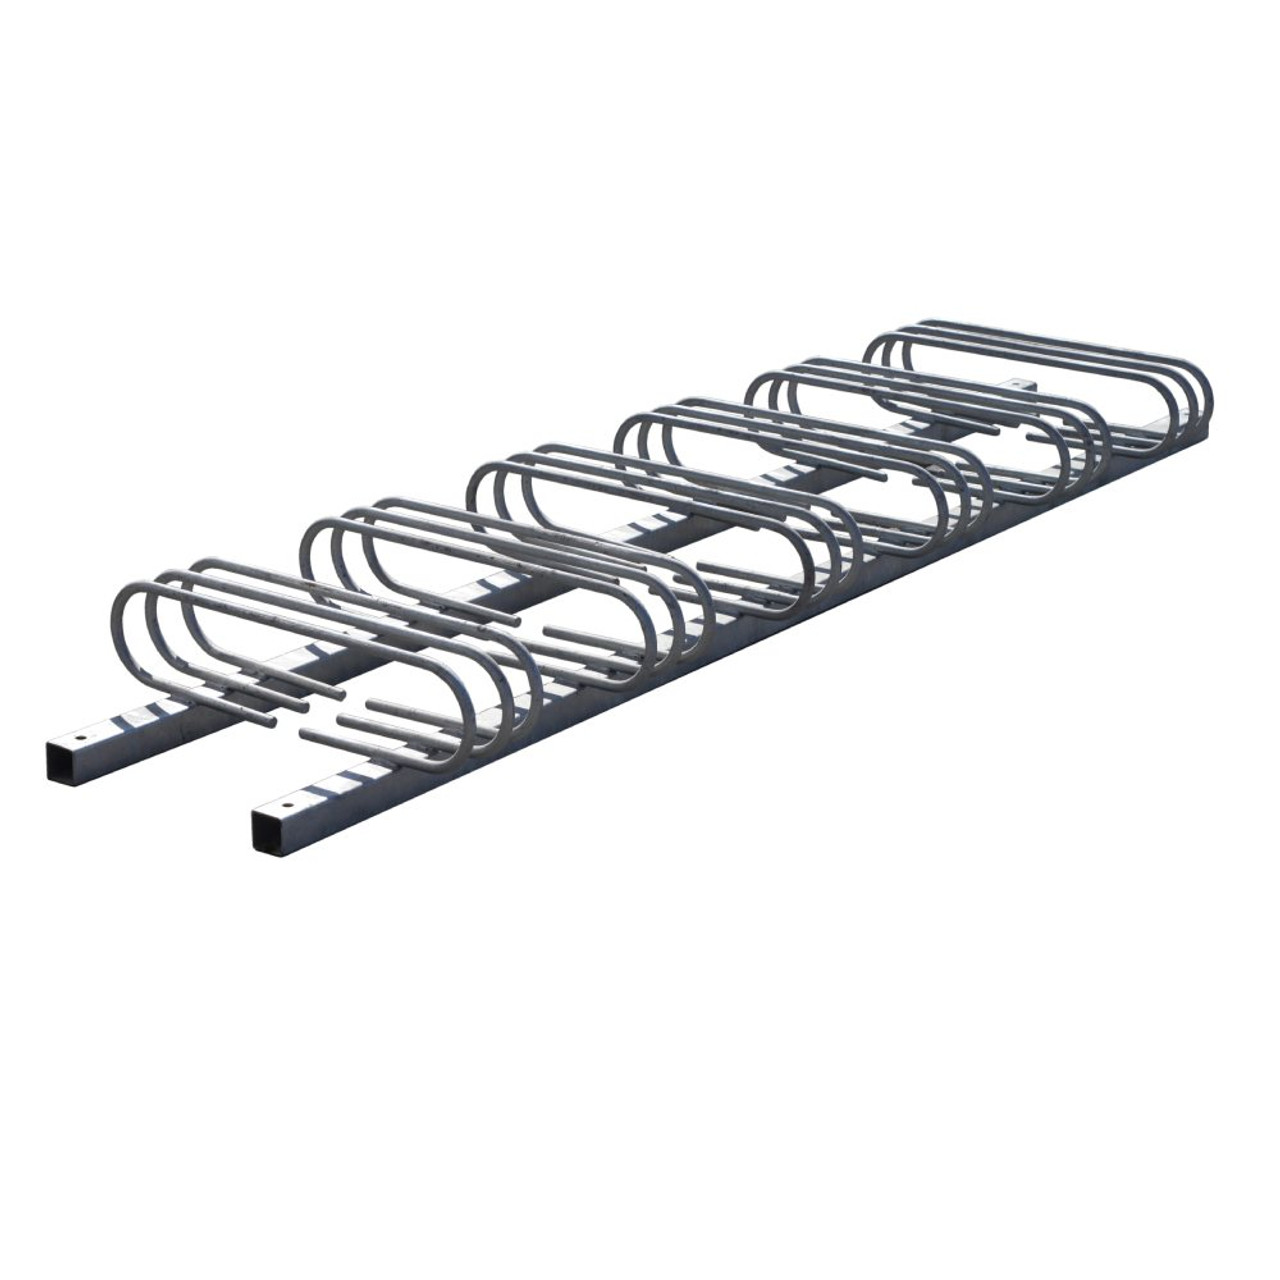 Set of 2 Specialty Products Company 91877 Lo-Profile Extender Bar,